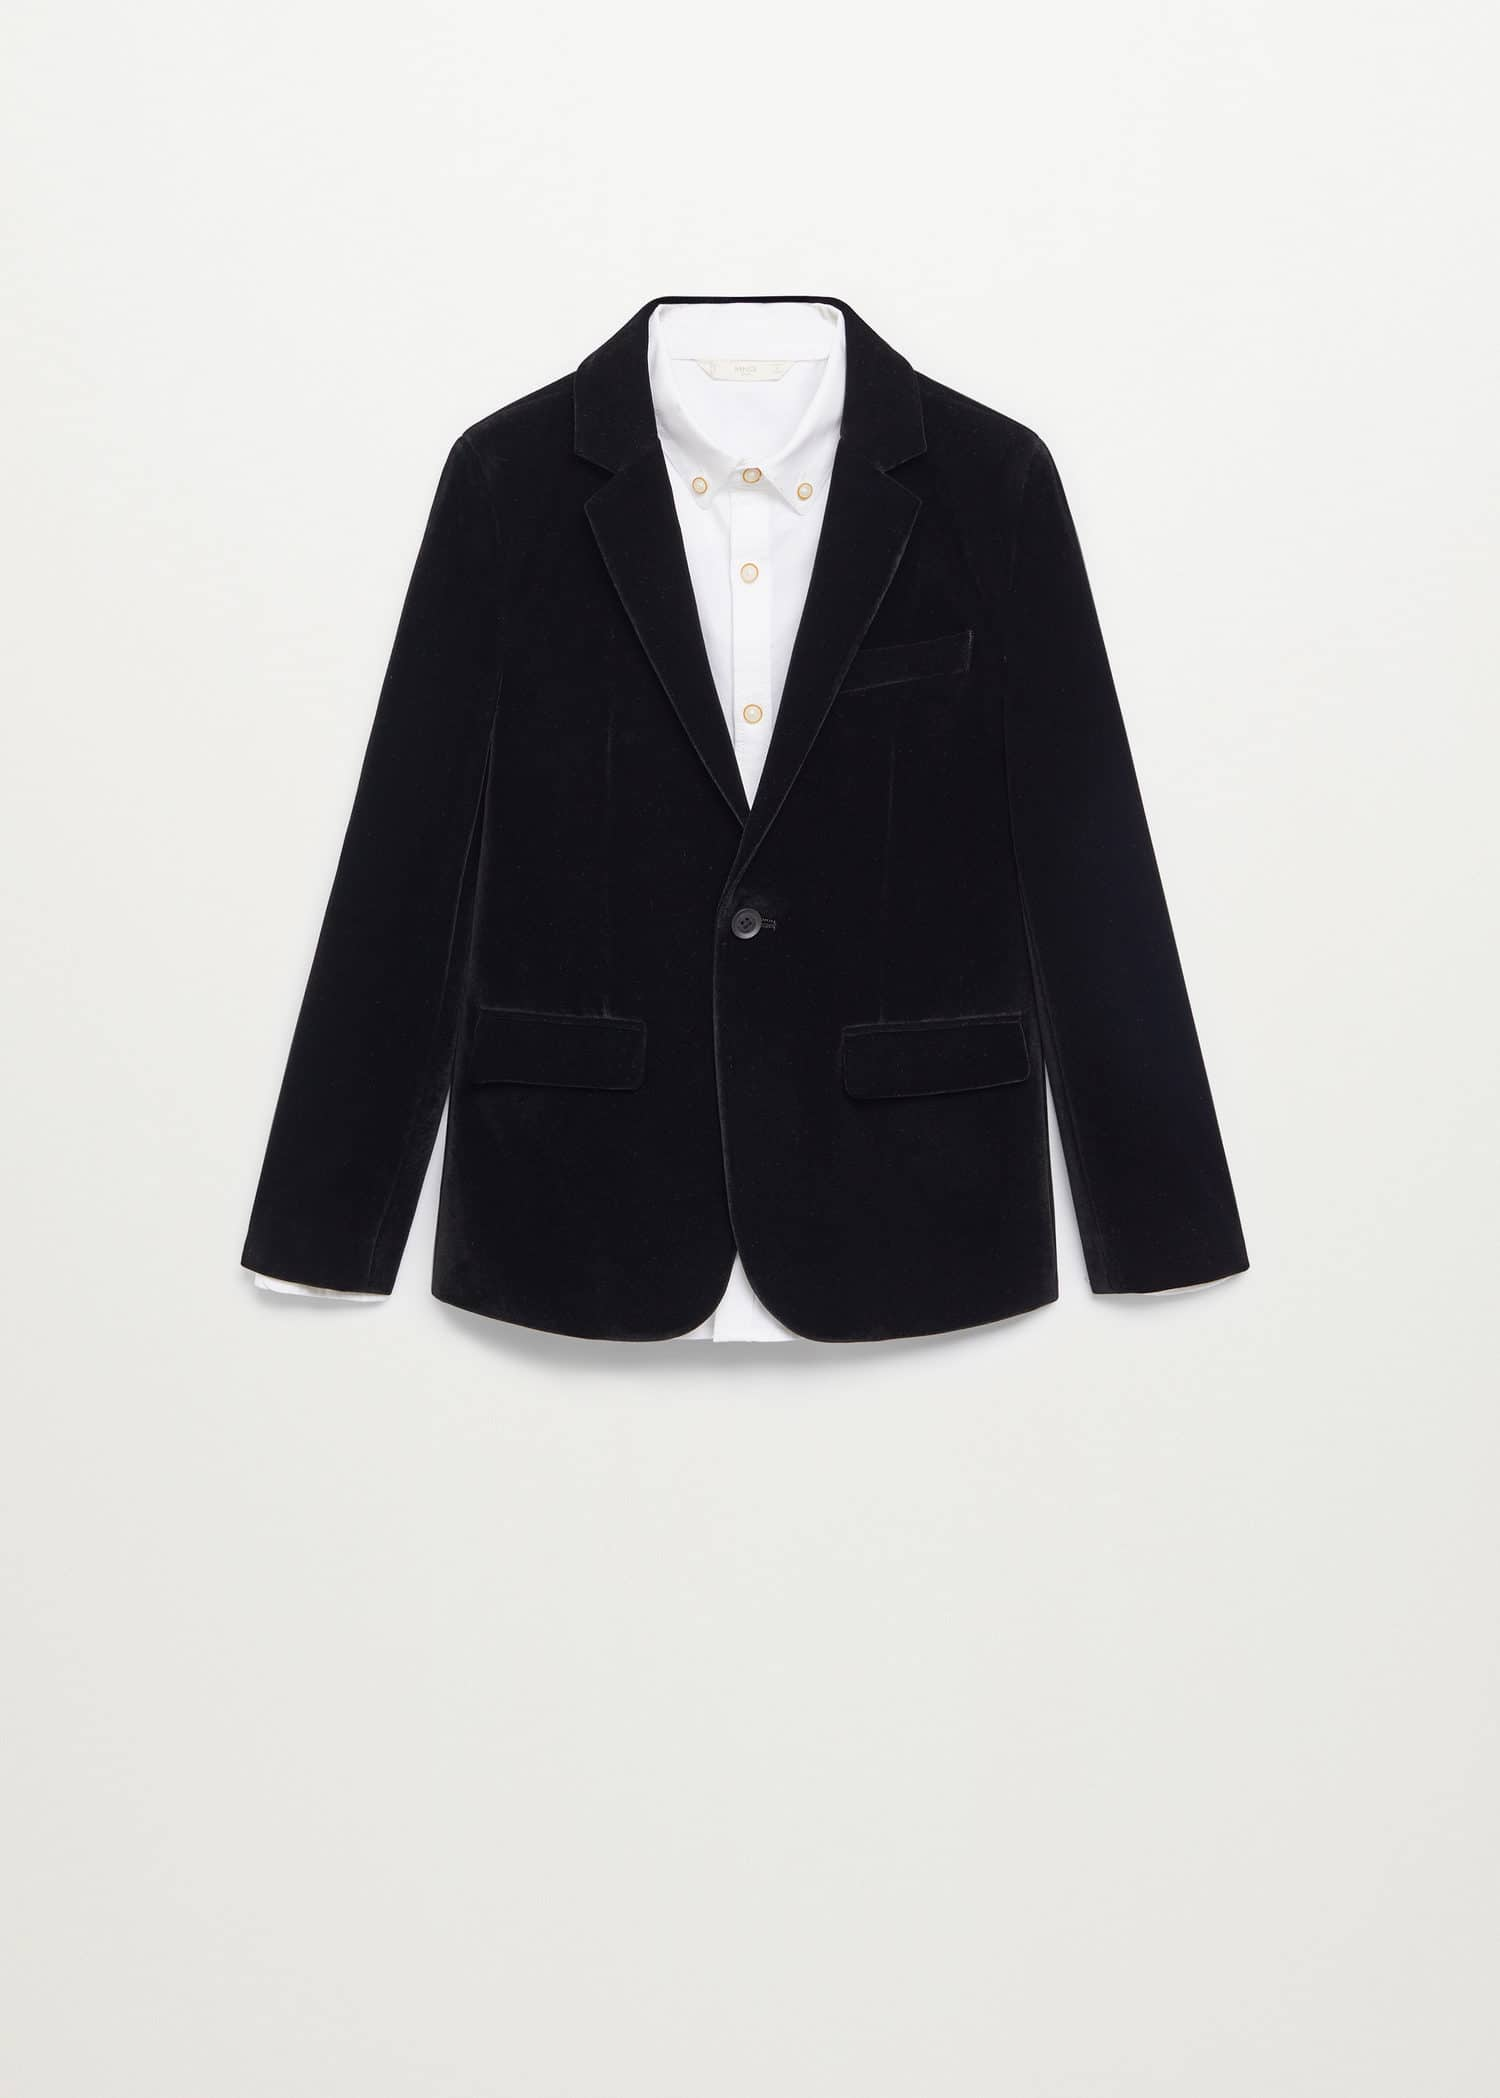 Velvet structured blazer - Article without model